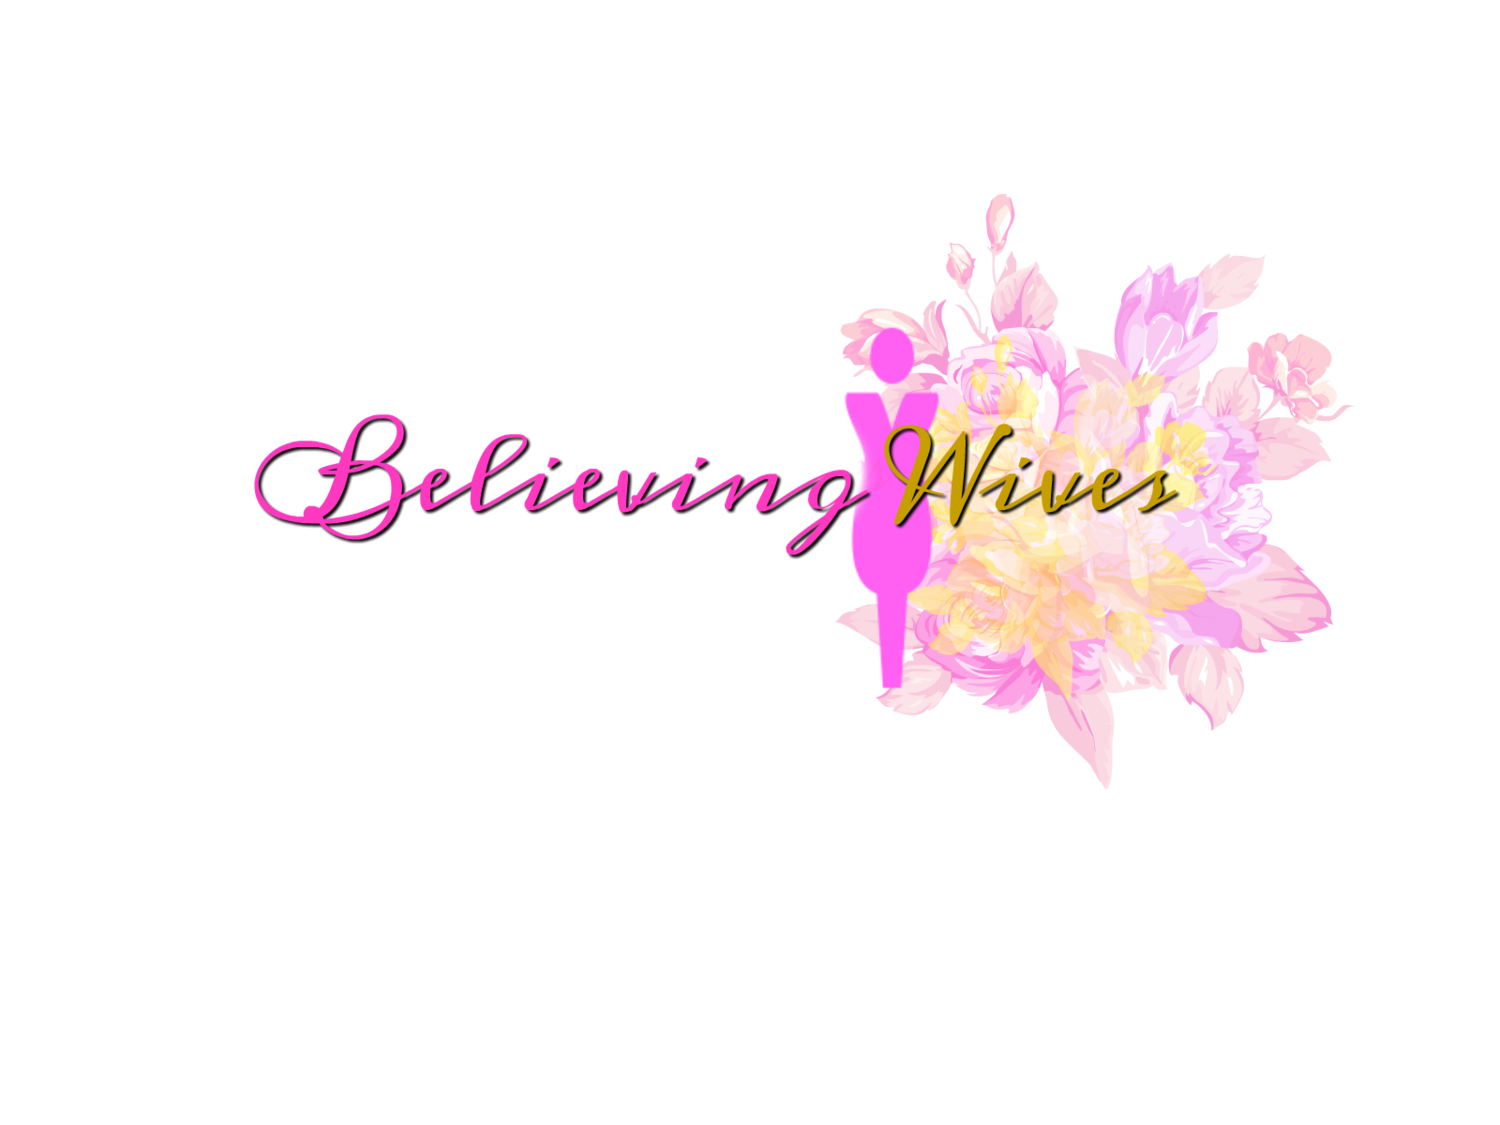 Believing Wives